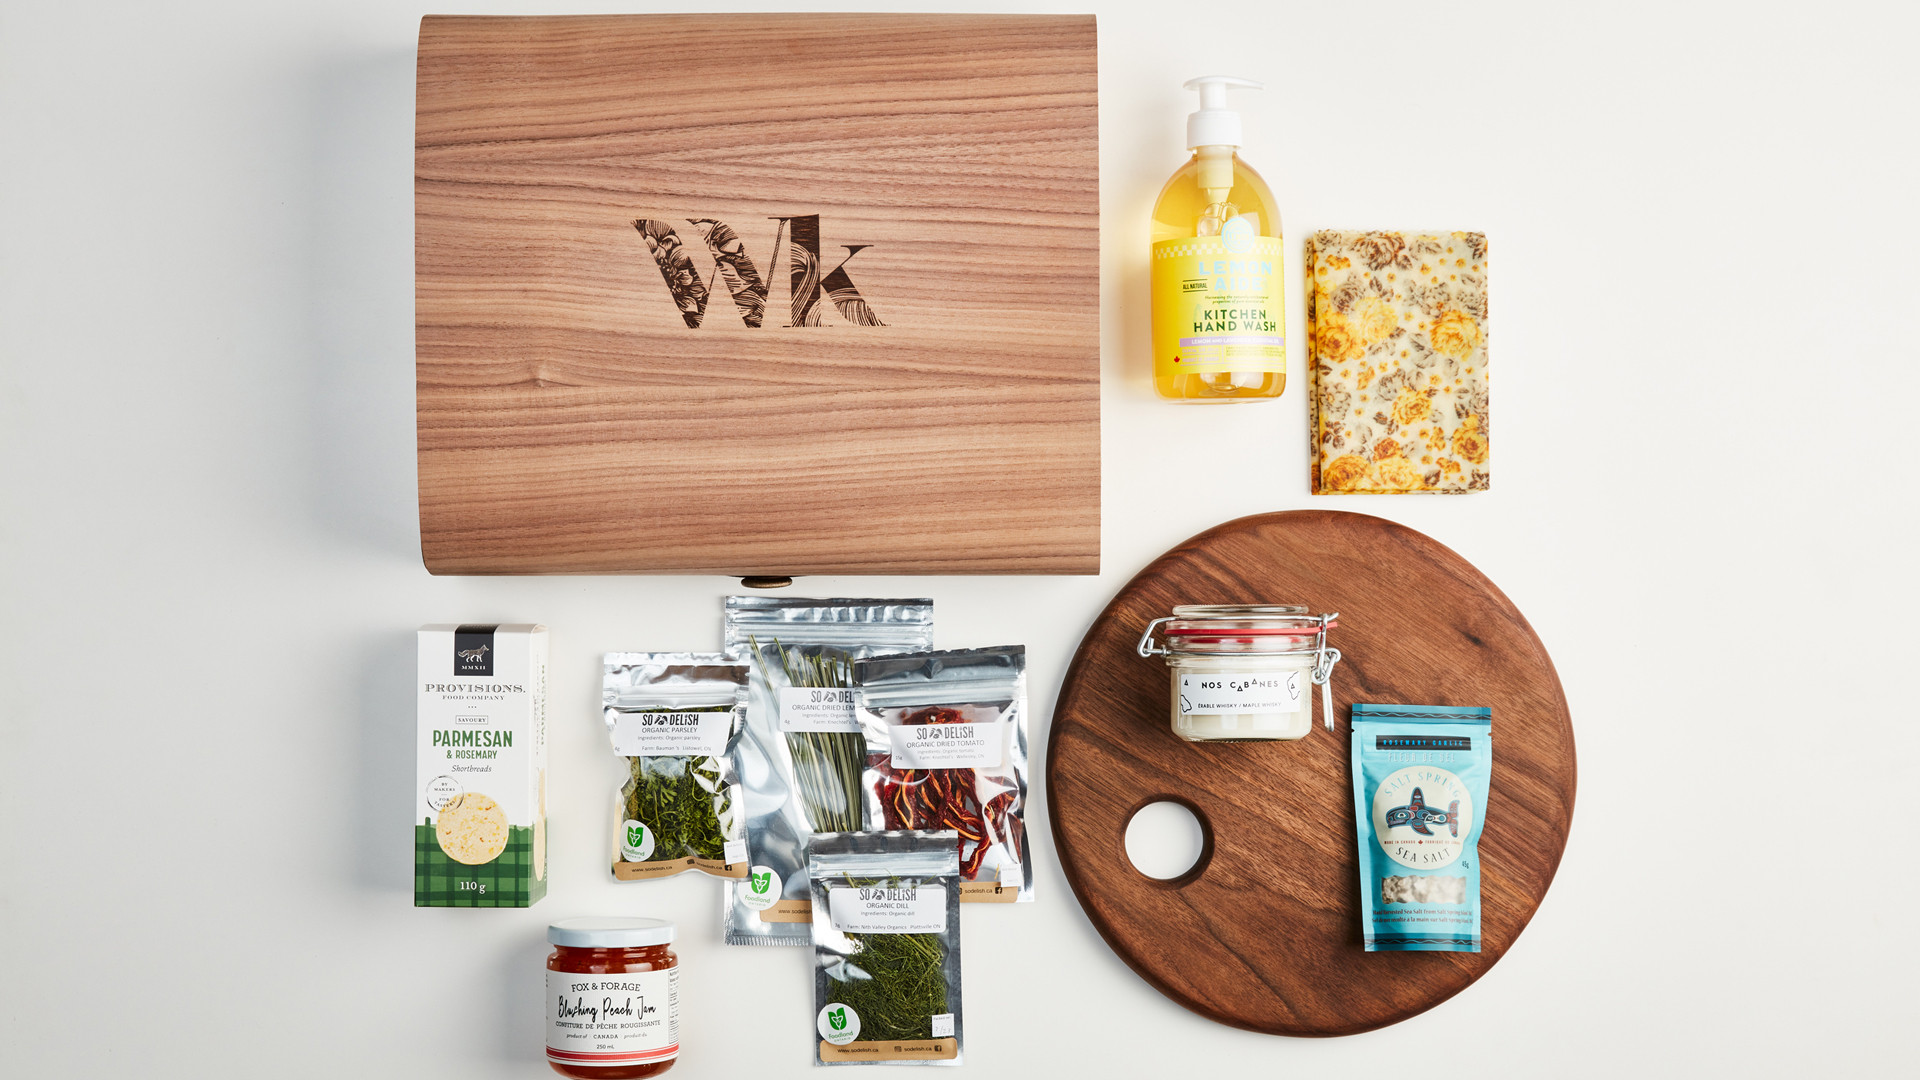 Wonderkind unique local gift sets made in Canada | Kiss the cook gift box